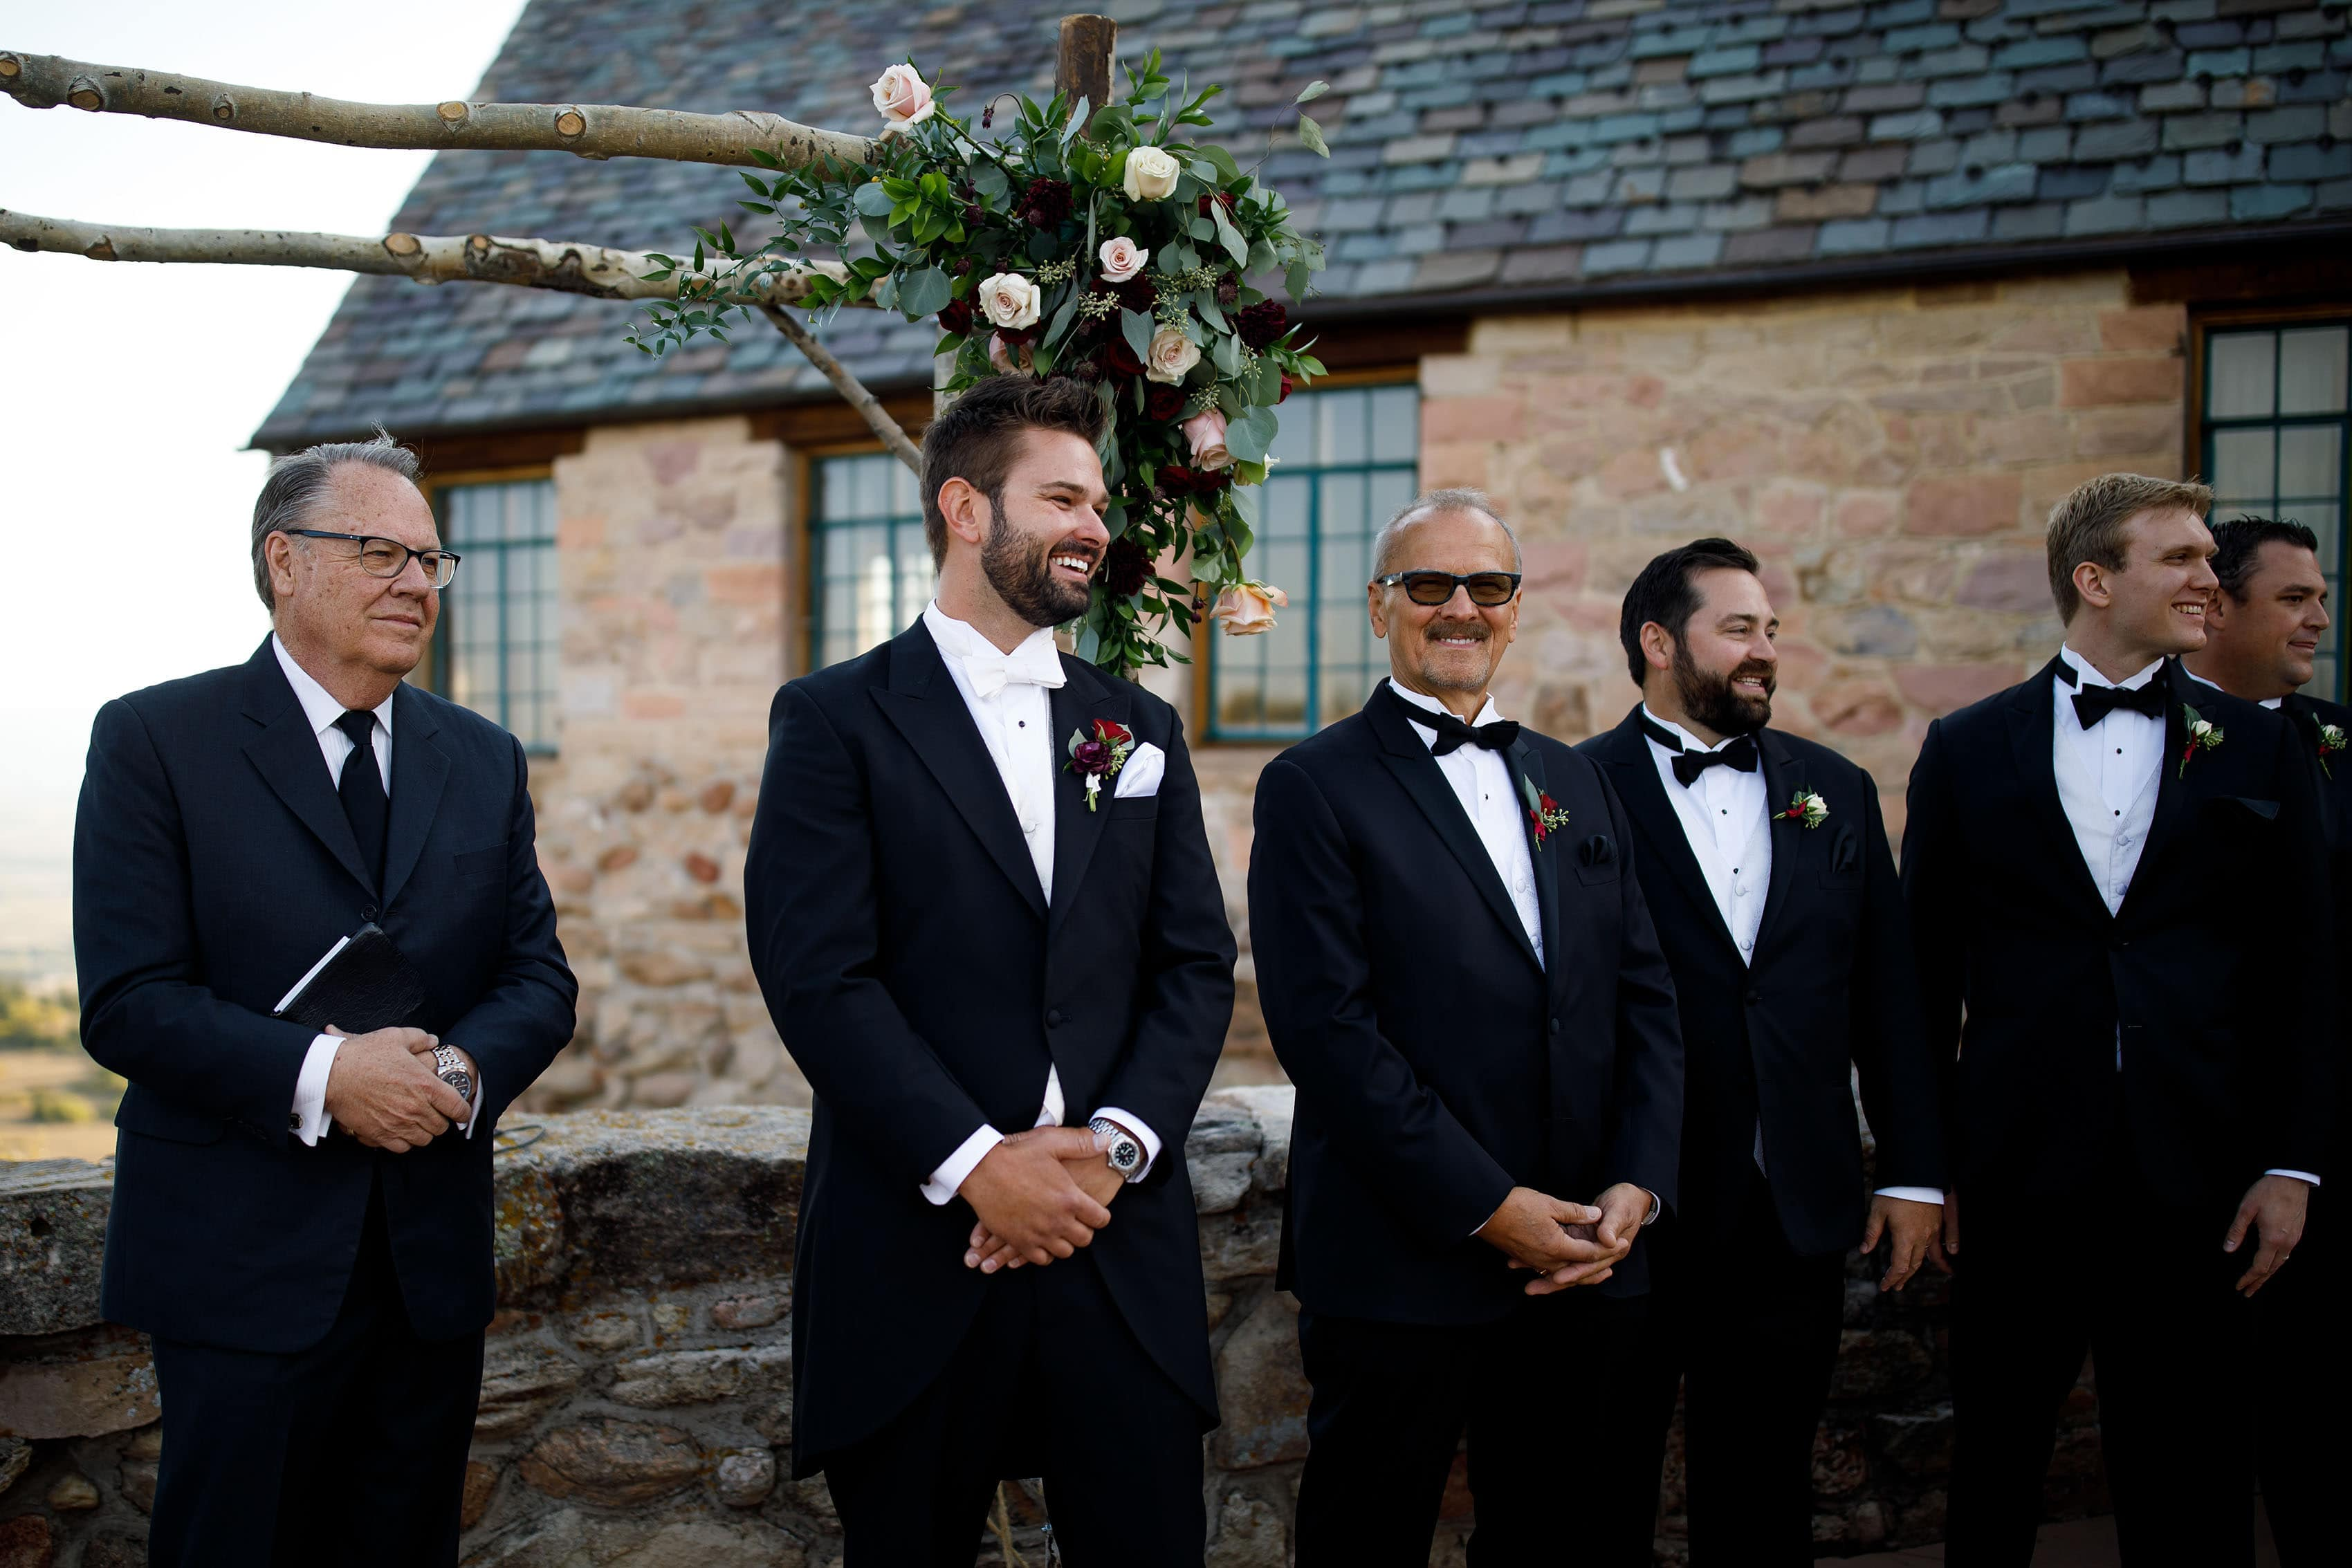 The groom smiles during the ceremony